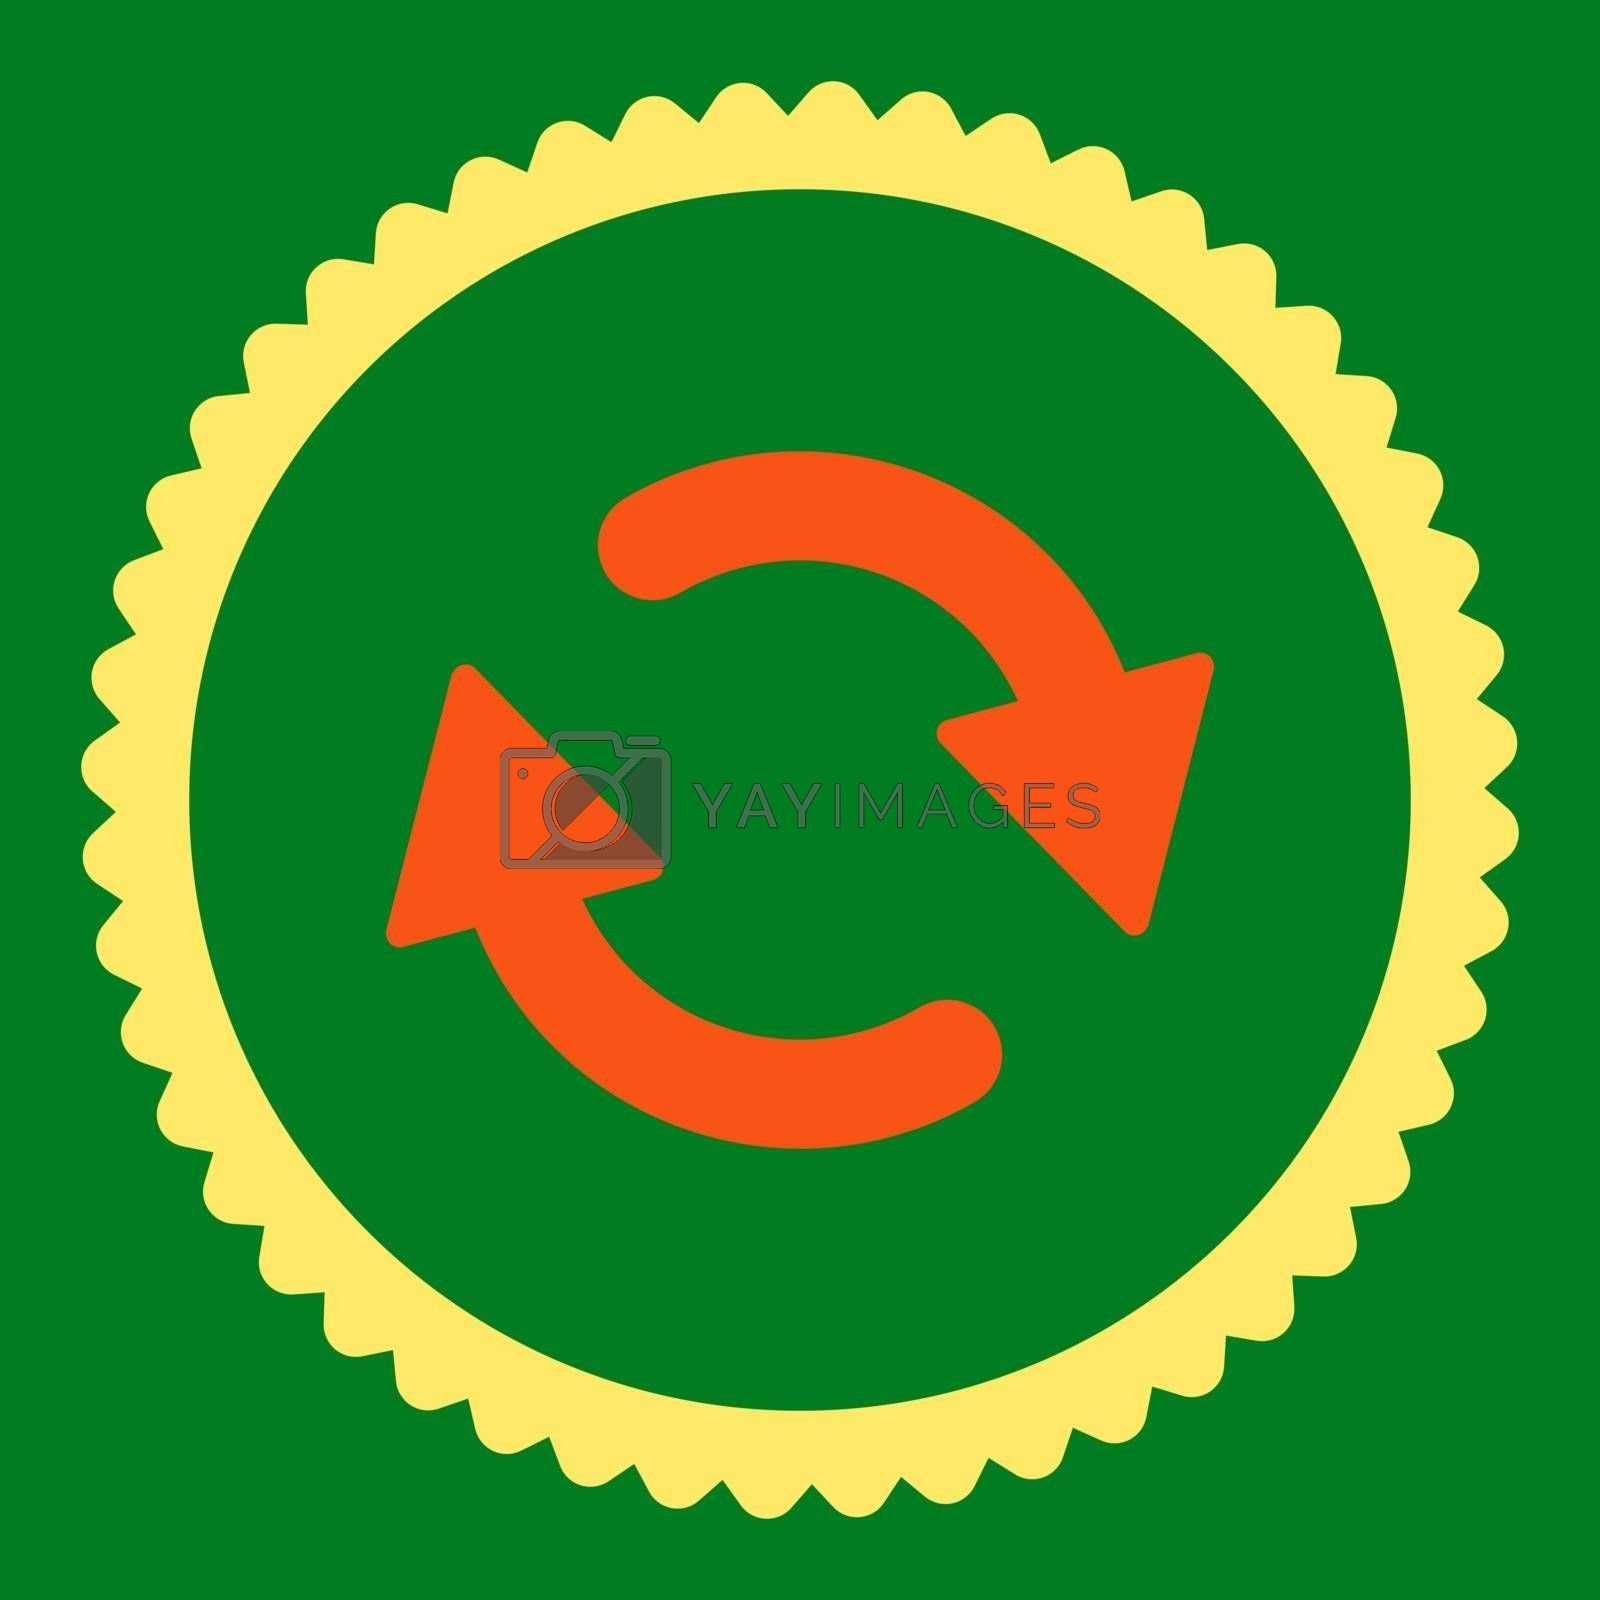 Refresh flat orange and yellow colors round stamp icon by Aha-Soft